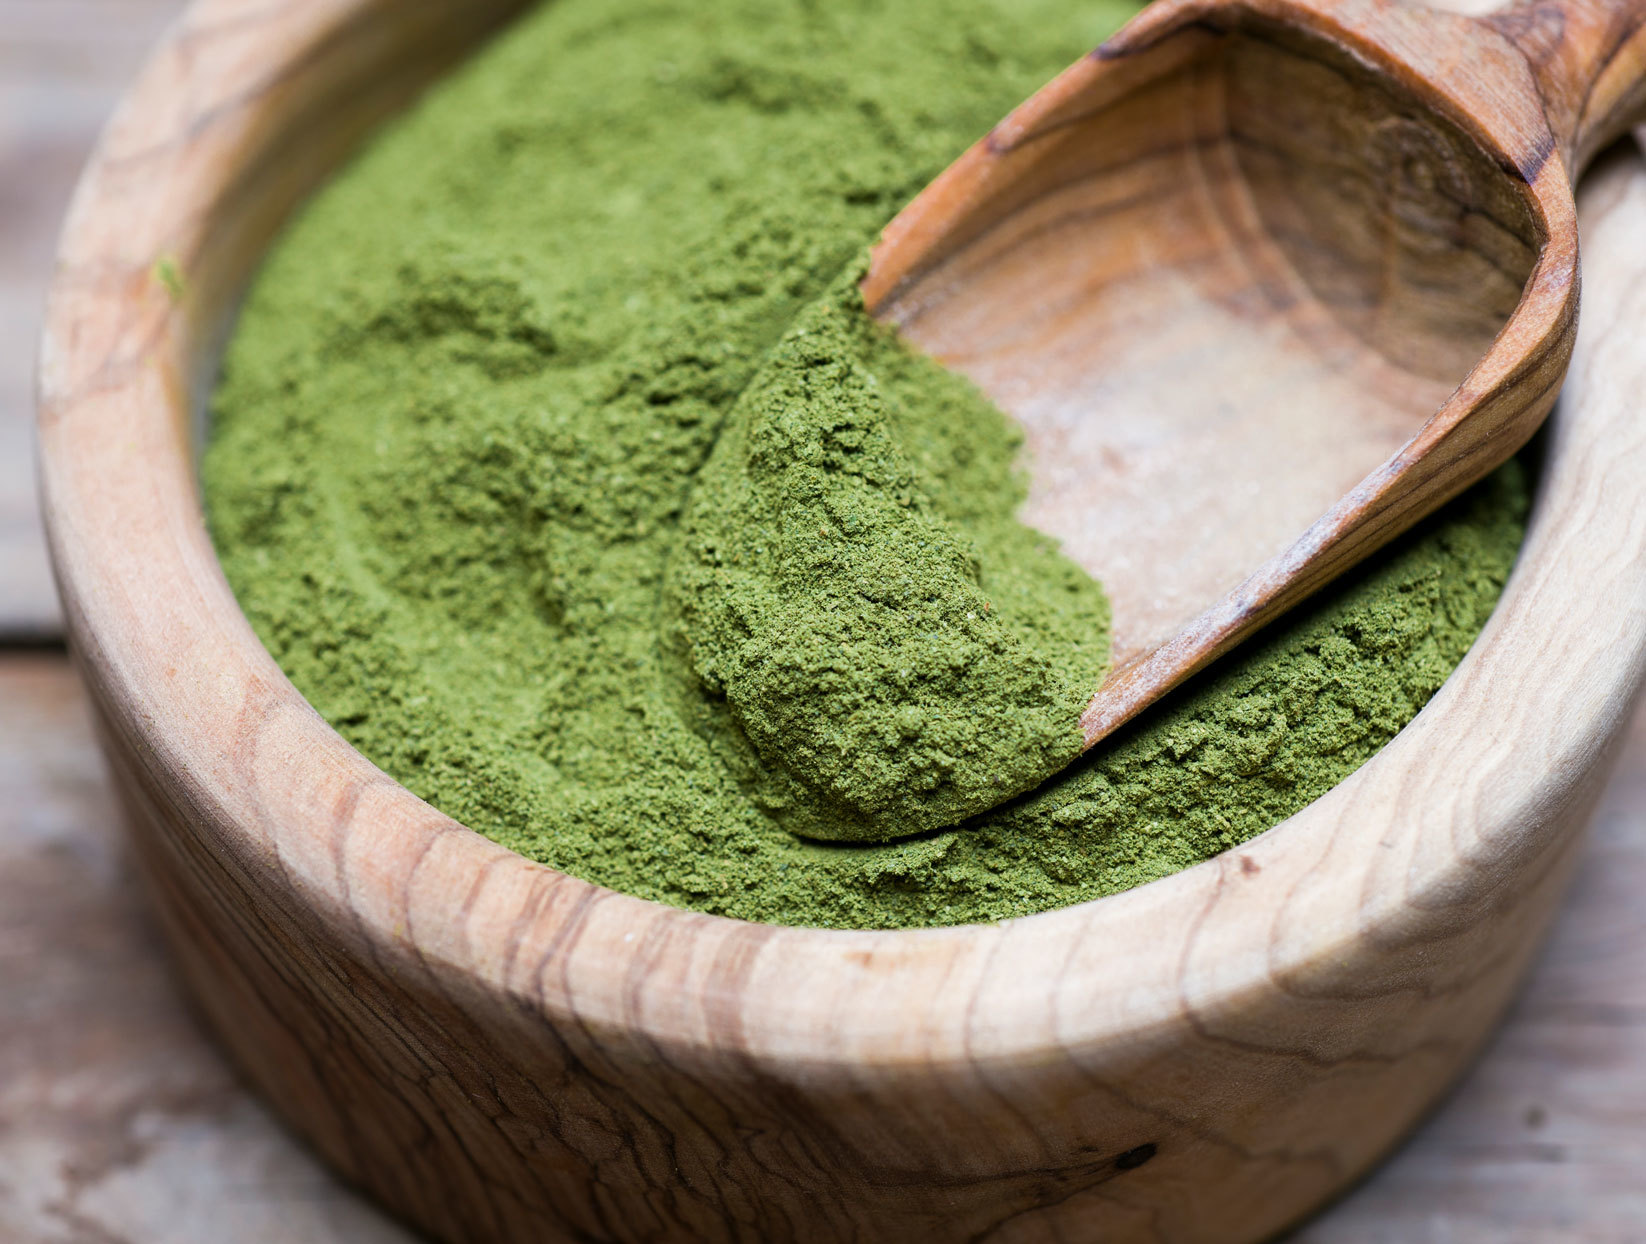 Moringa powder in wooden bowl with wooden scoop